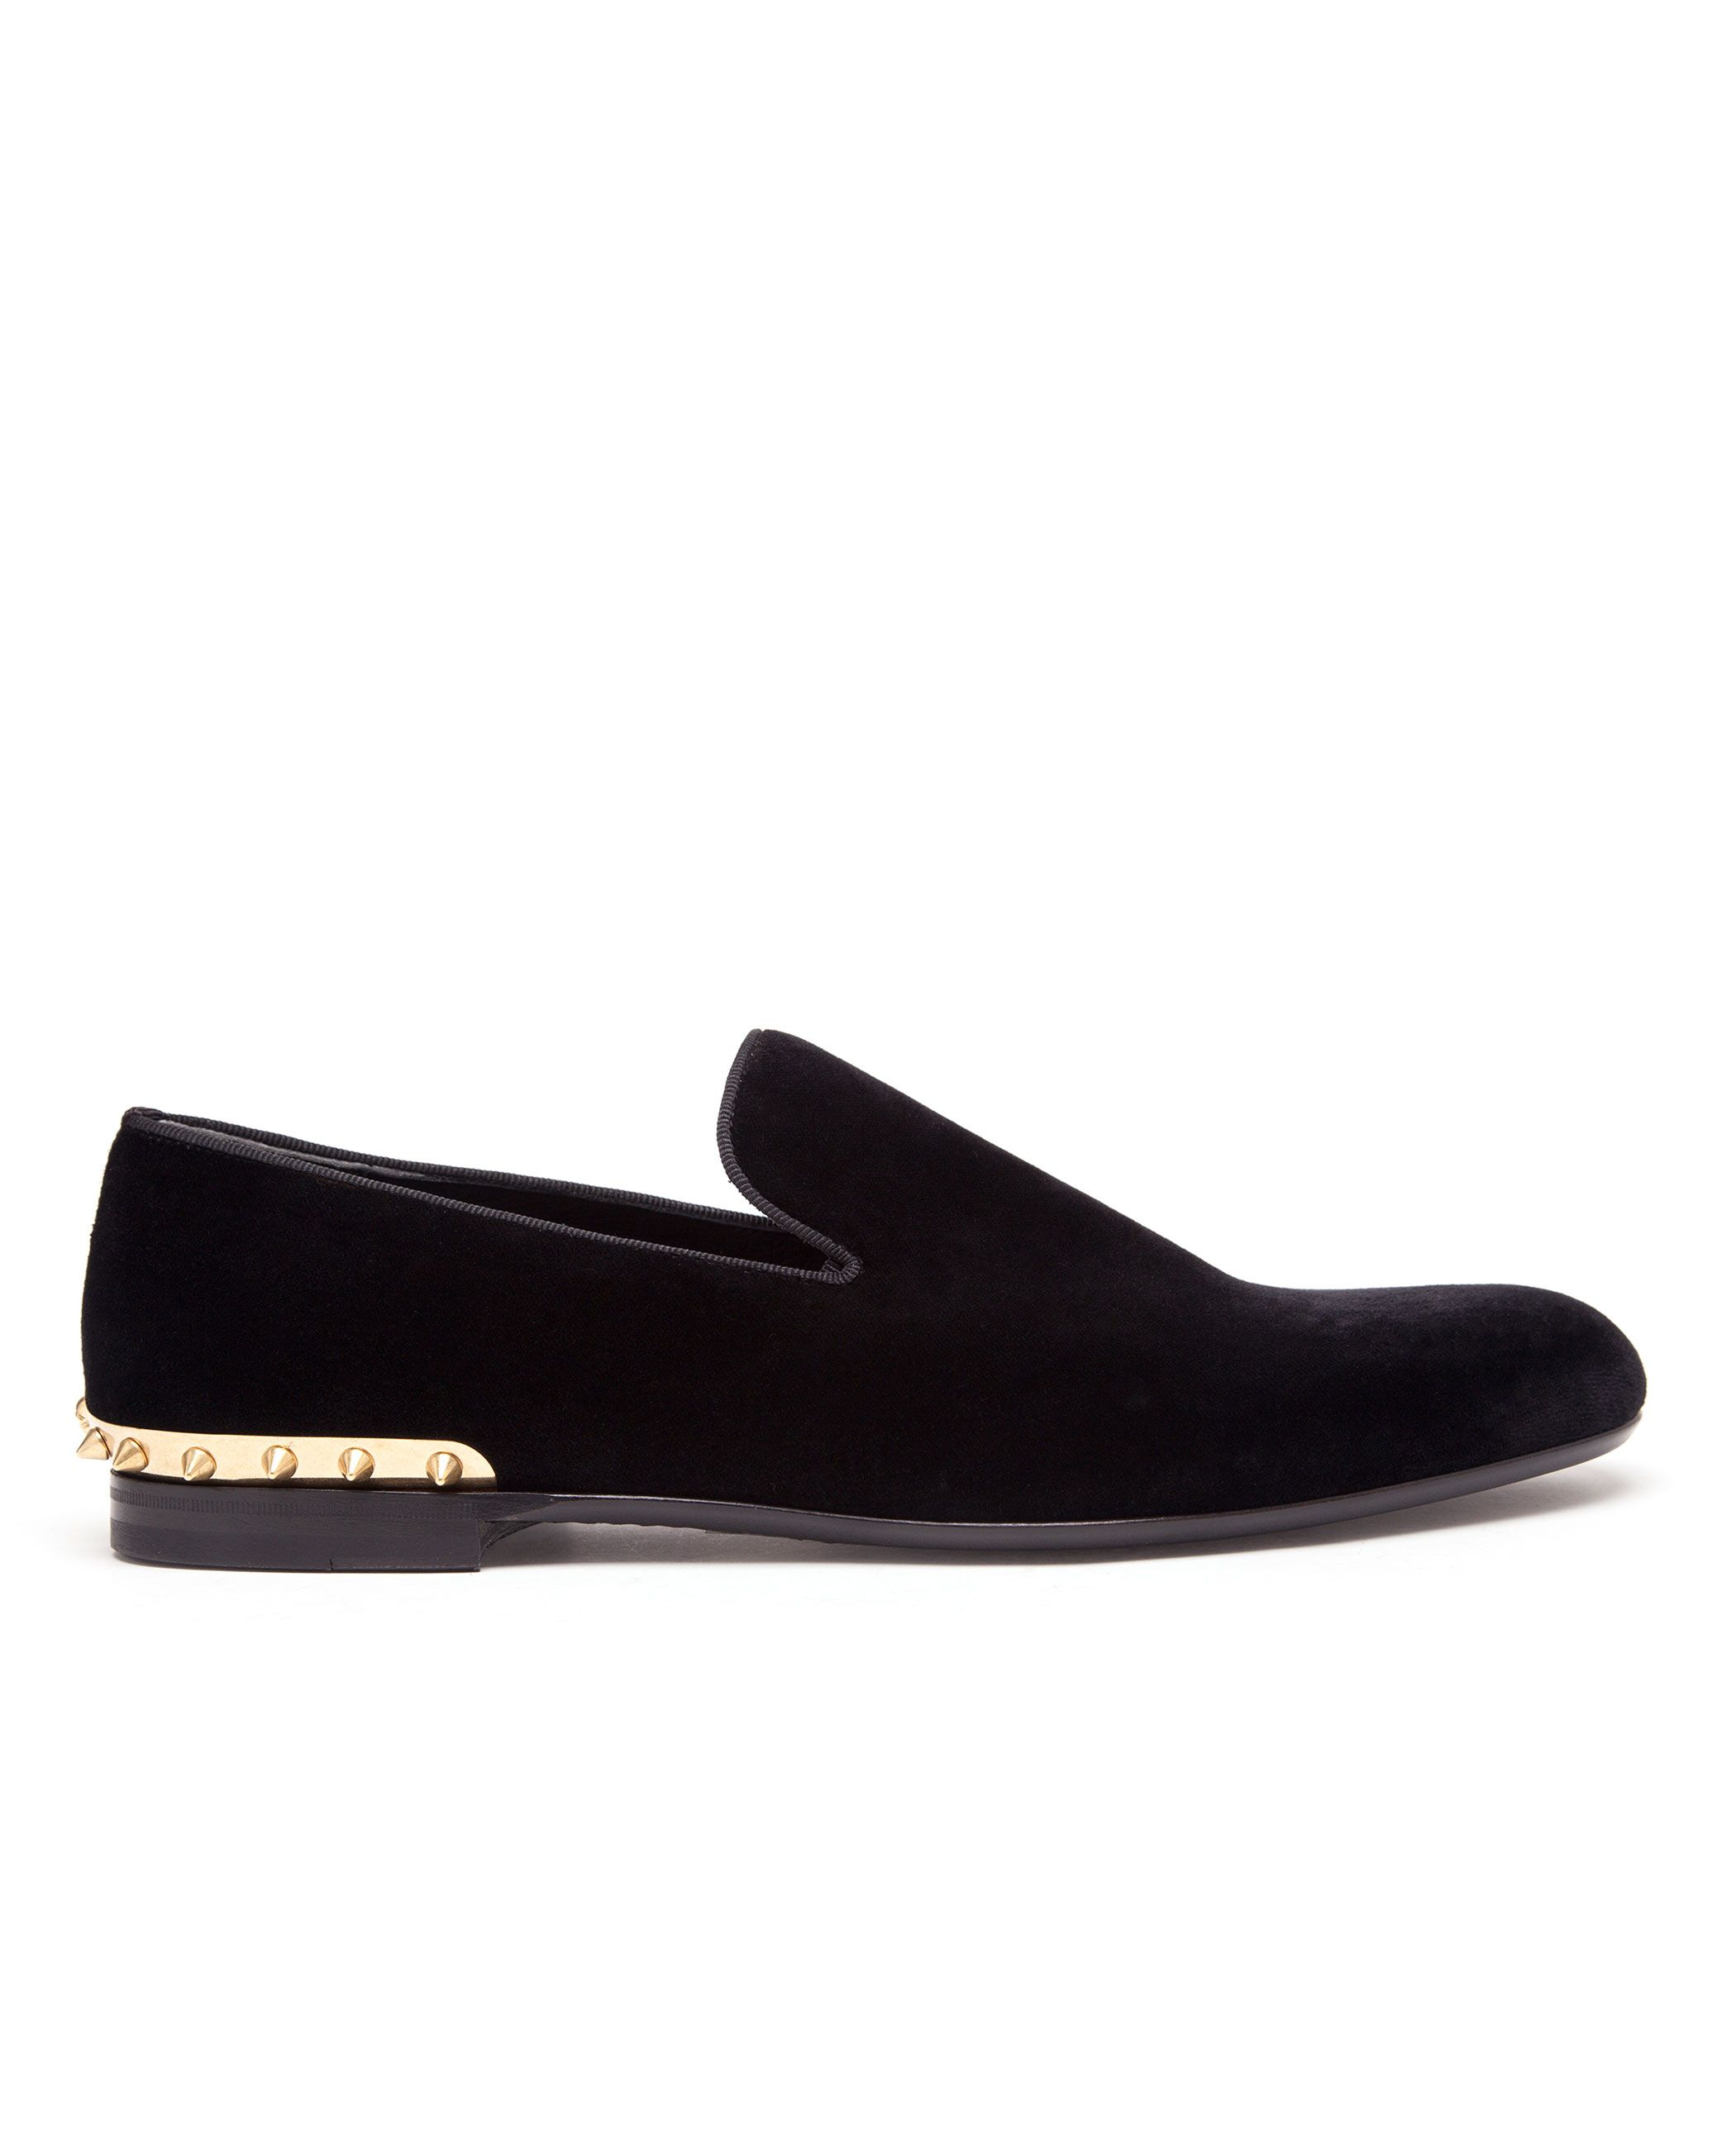 ALEXANDER MCQUEEN | Velvet Smoking Slippers | Browns